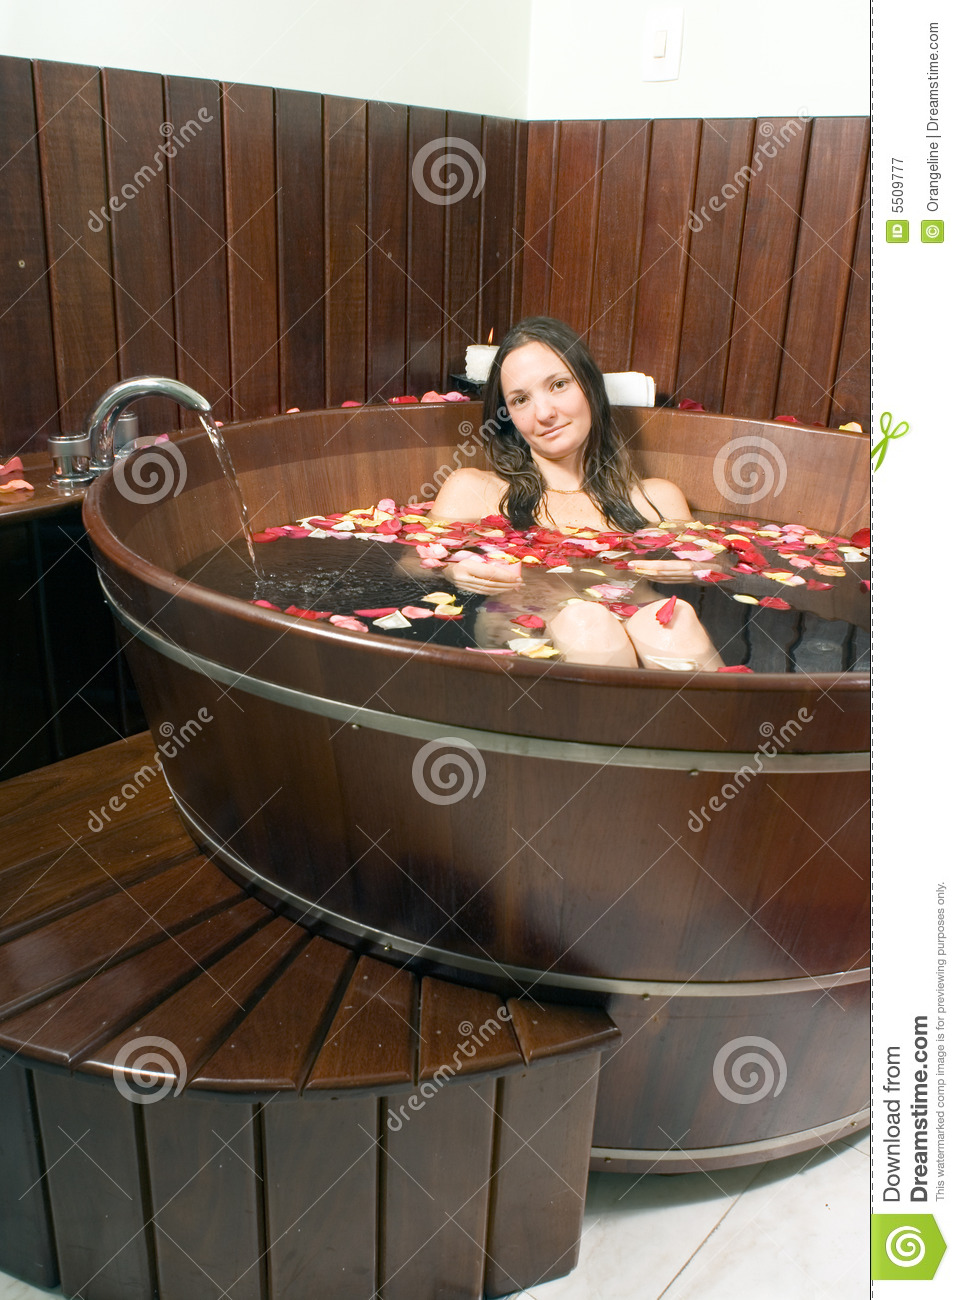 Woman At A Spa Soaking In A Large Wooden Bathtub Stock Image - Image ...